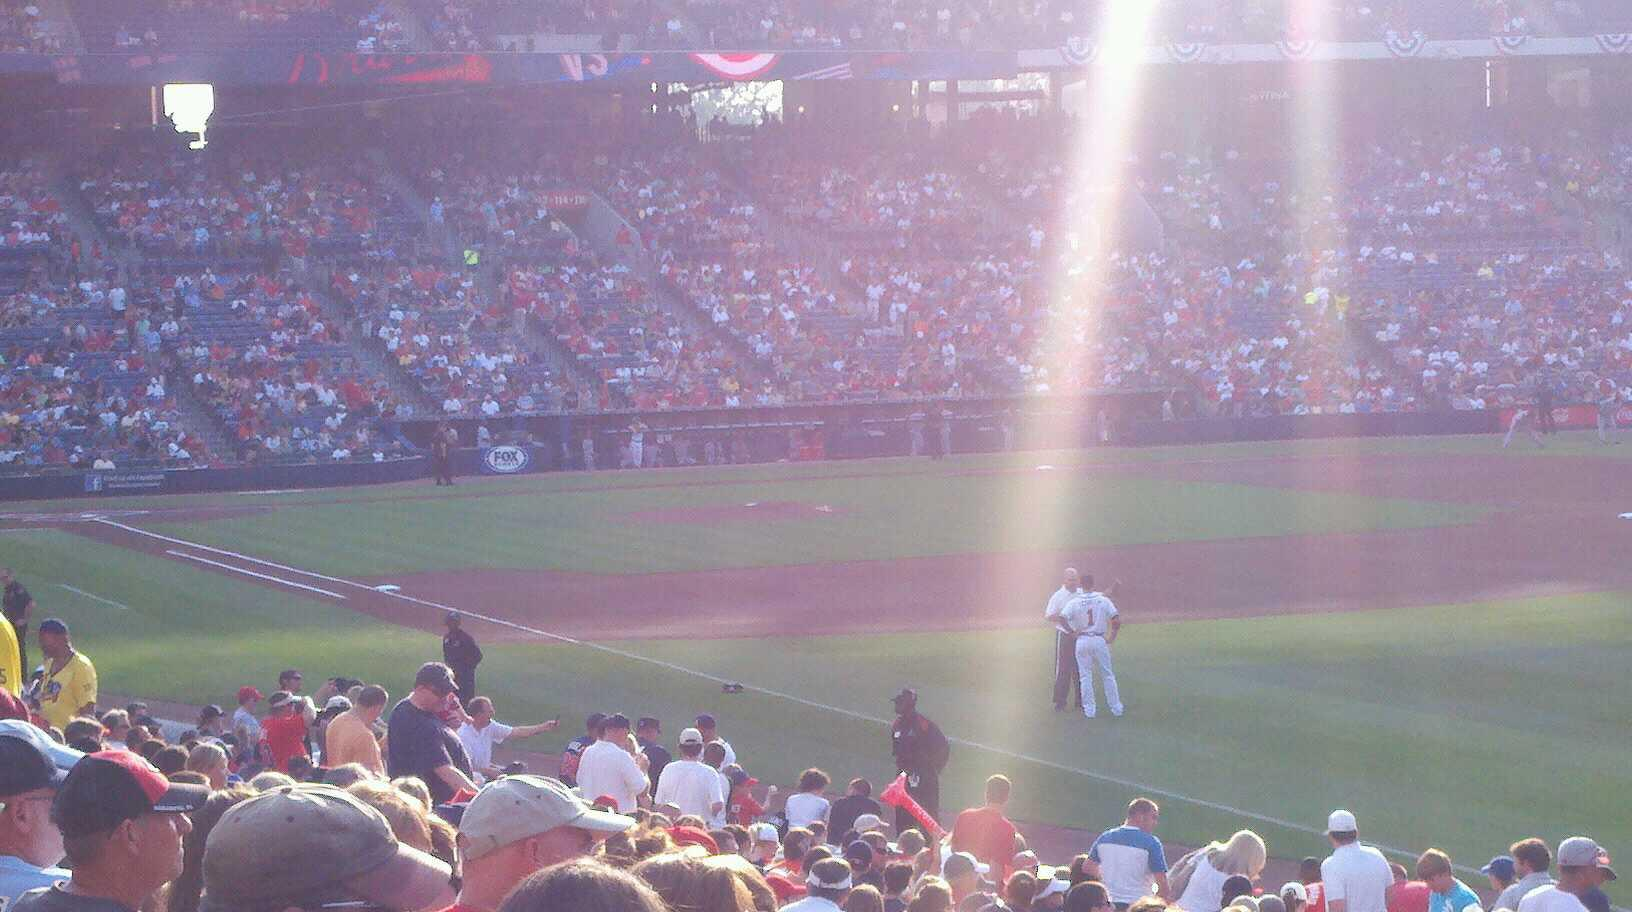 Turner Field Section 225 Row 23 Seat 4